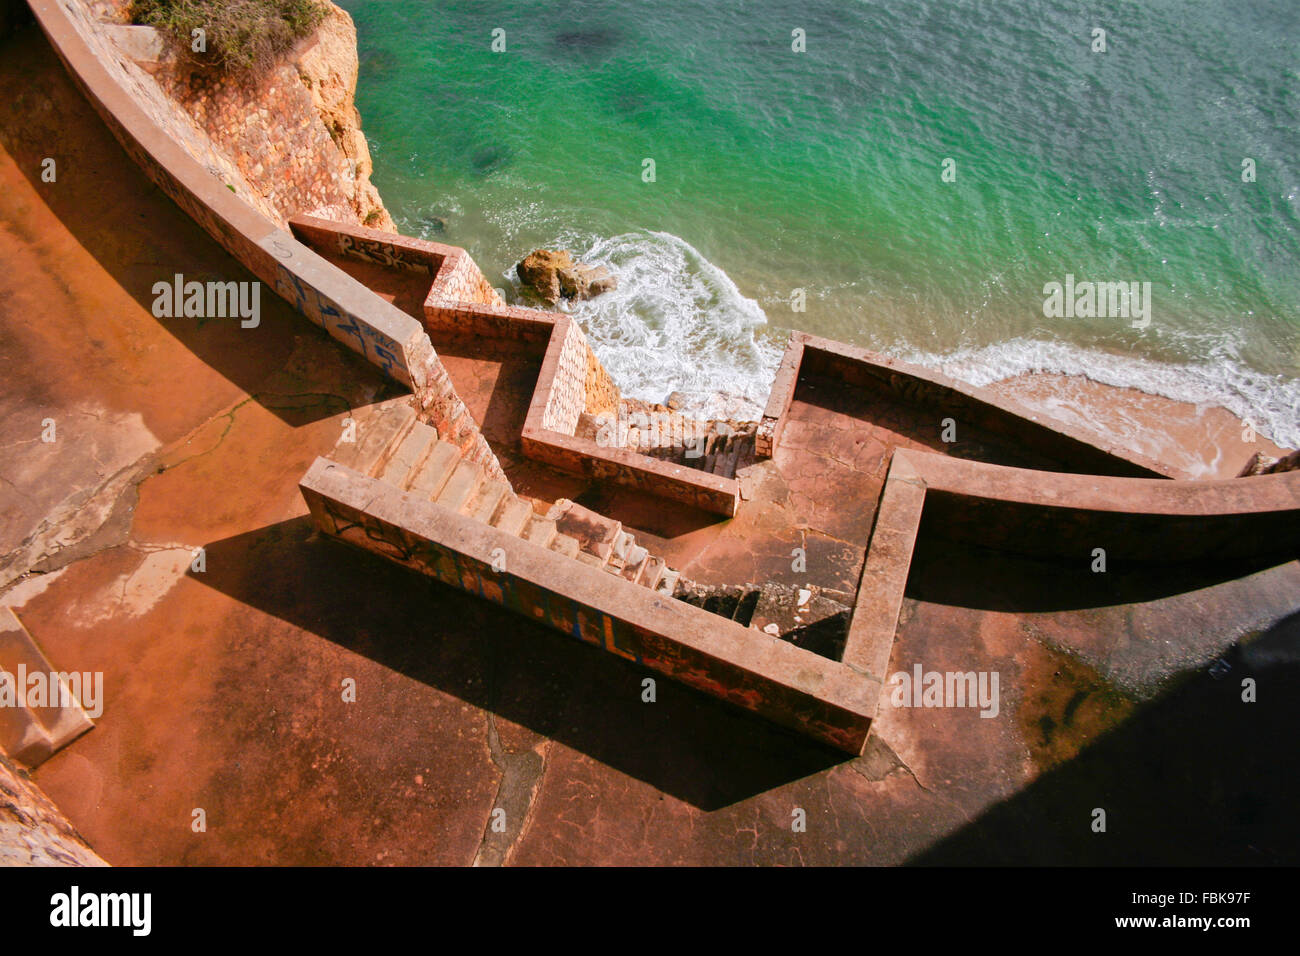 Concrete stairs going down until the seashore, Lagos, Portugal - Stock Image